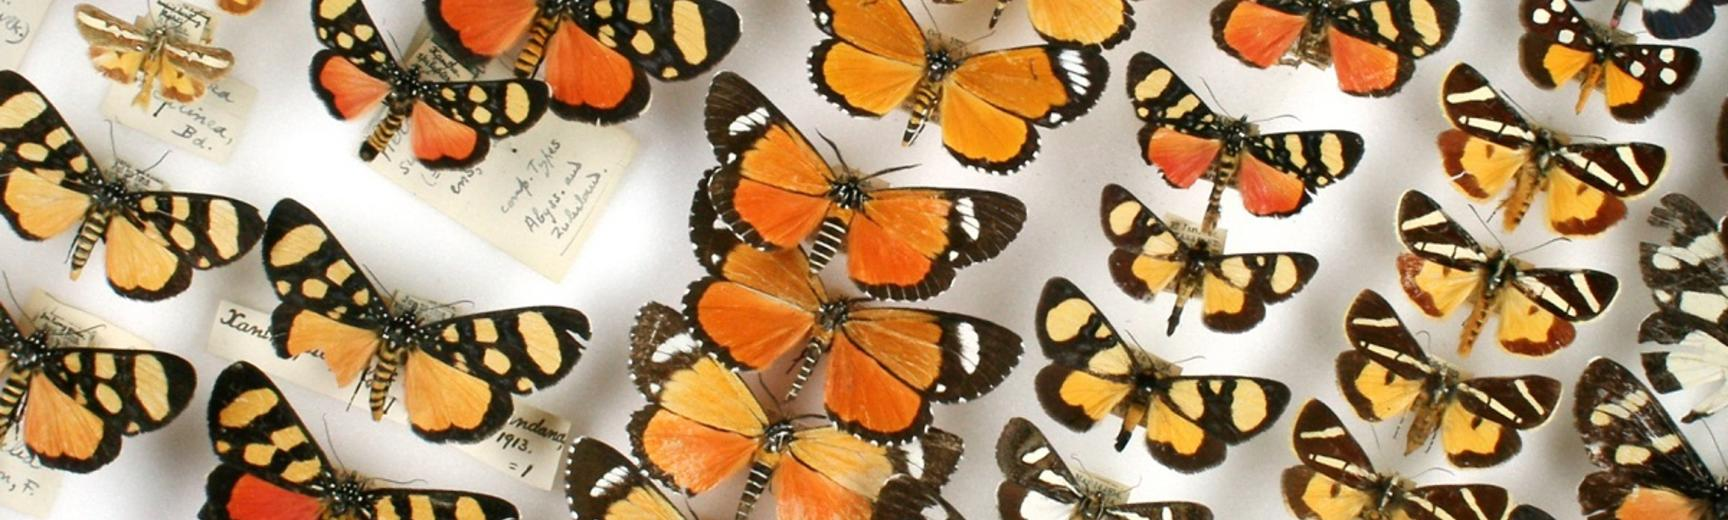 butterfly specimens